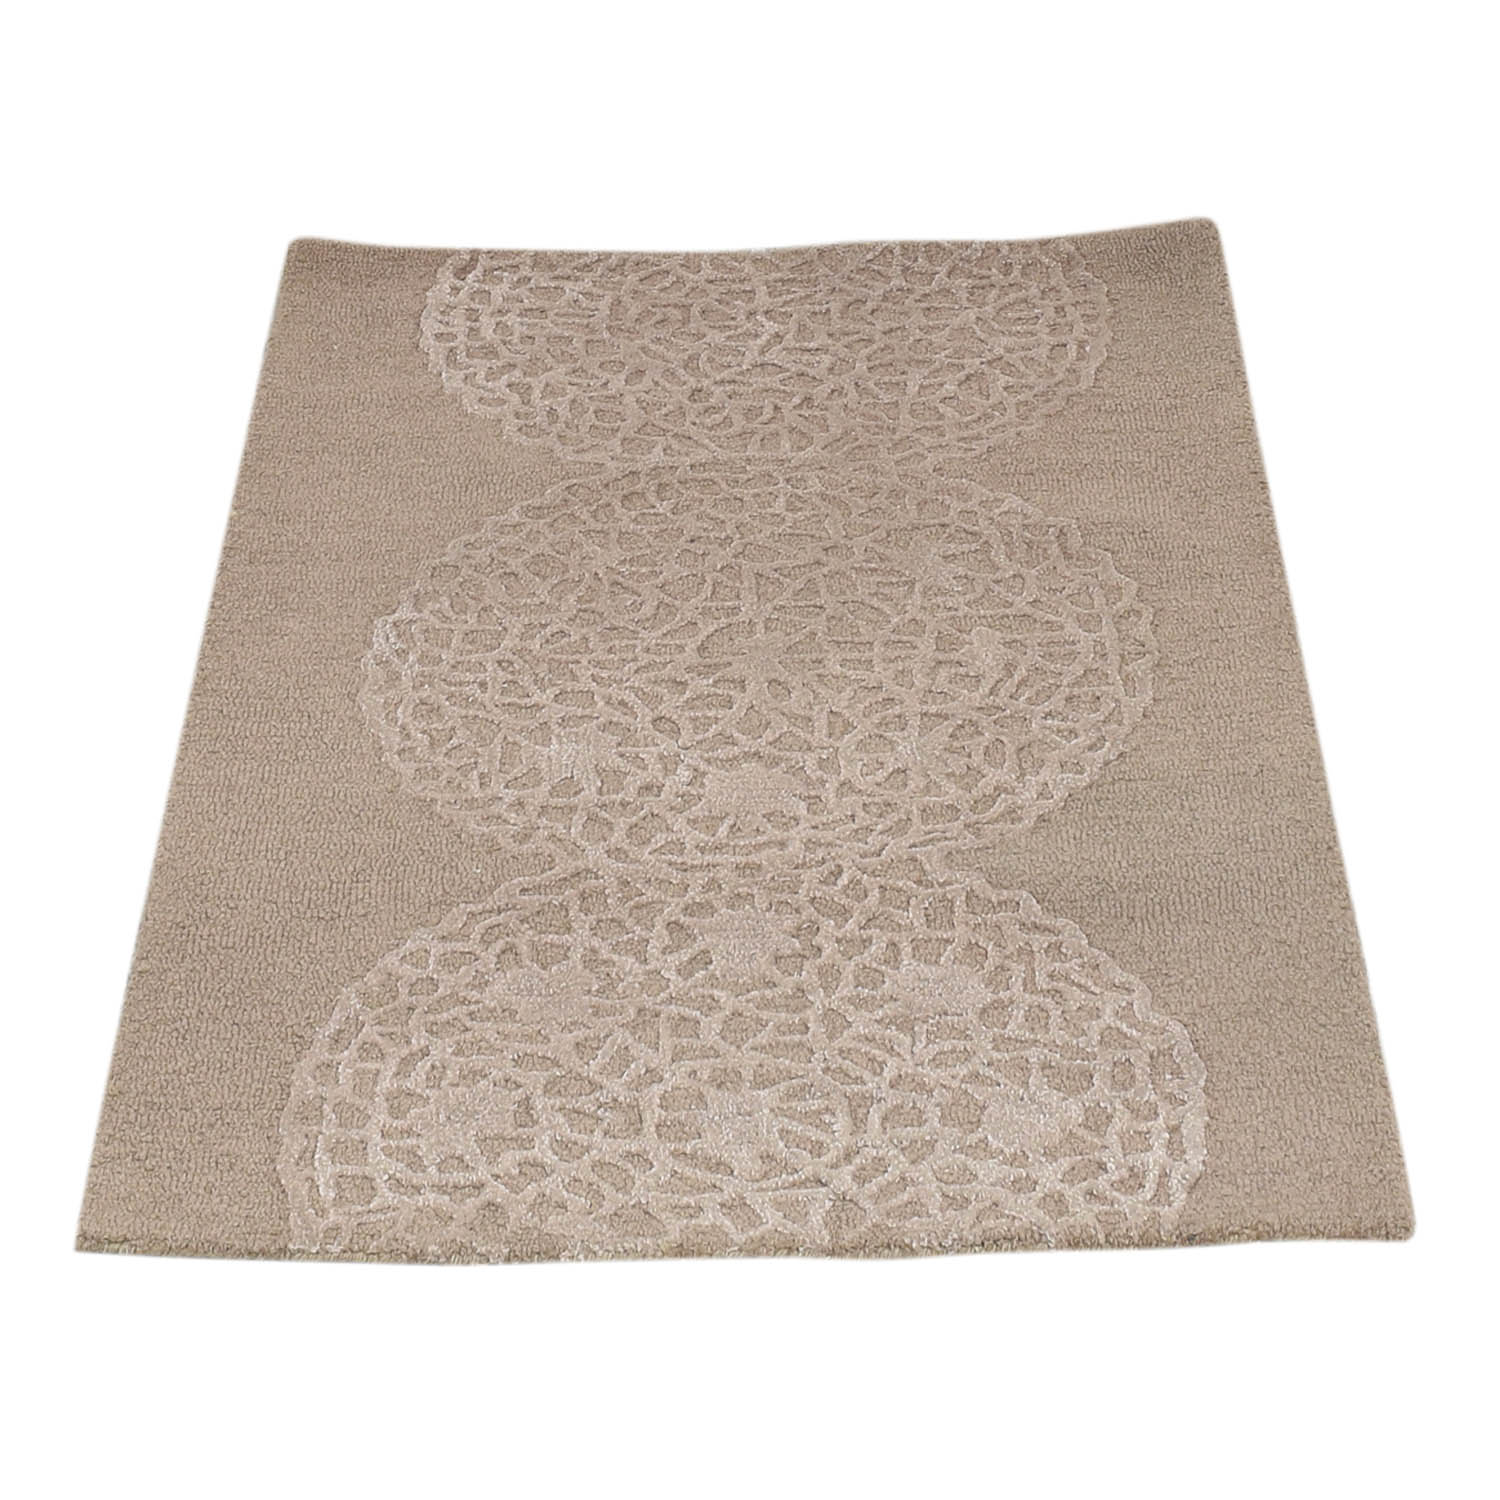 Wayfair Wayfair Rizzy Home Rug pa